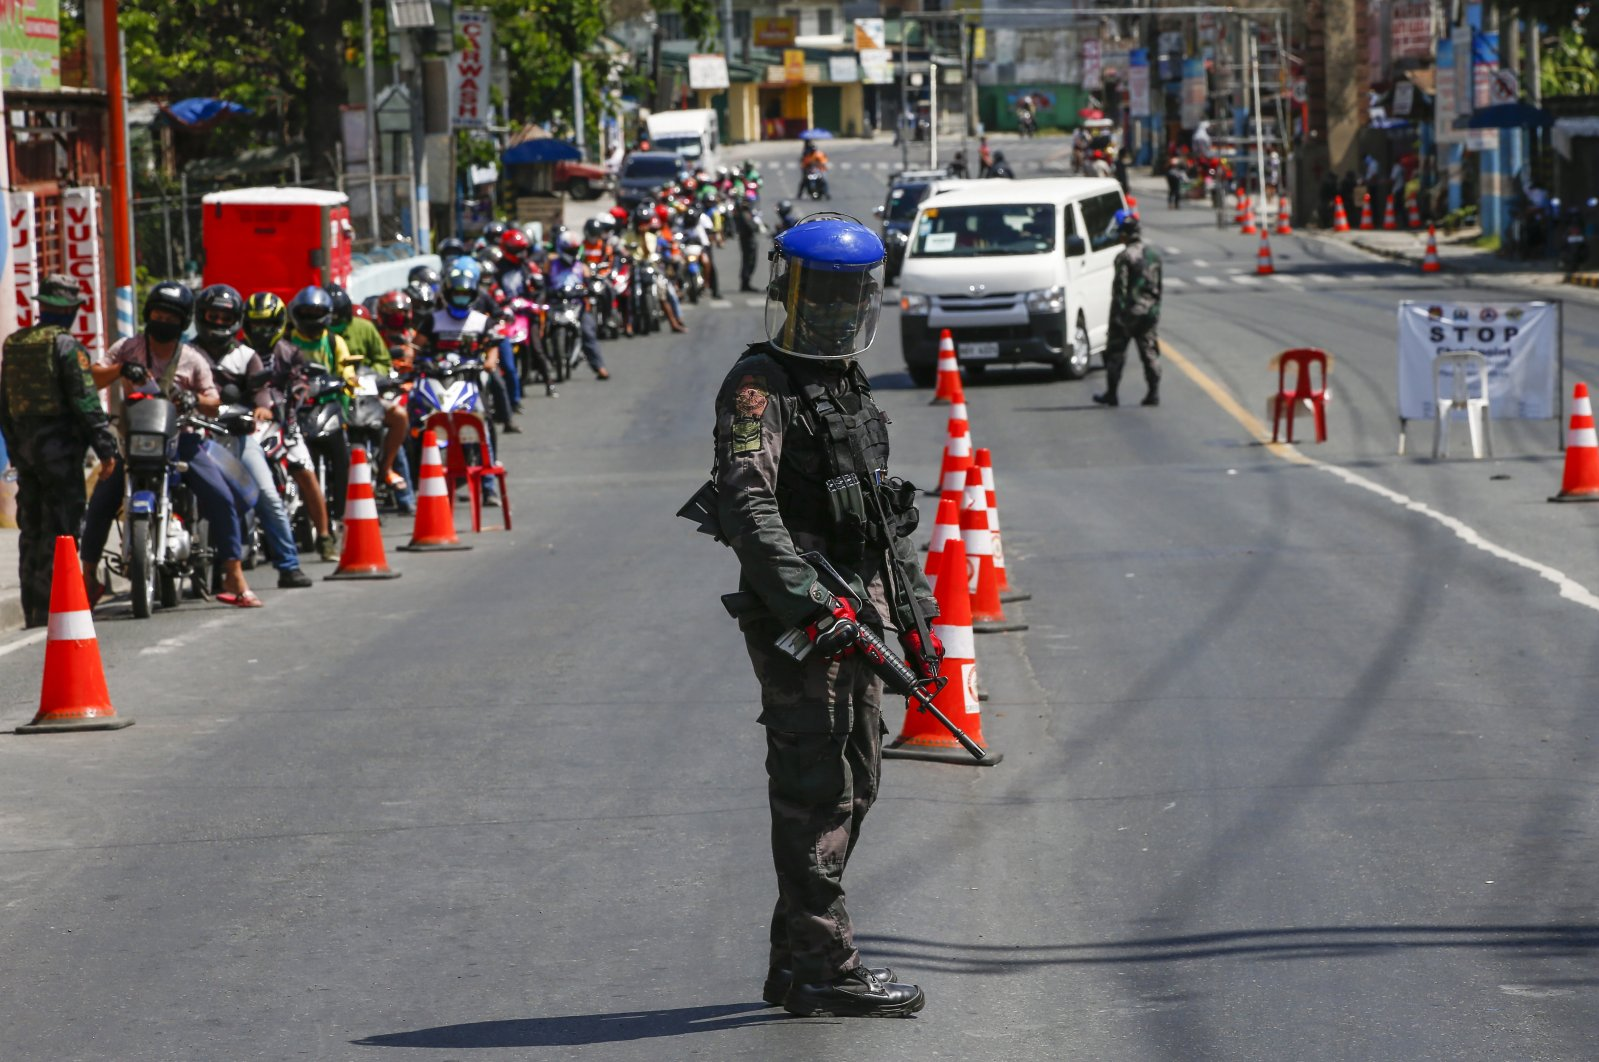 A police officer guards a checkpoint at the border between Rizal province and Marikina City, Metro Manila, Philippines, Thursday, April 2, 2020. (EPA Photo)